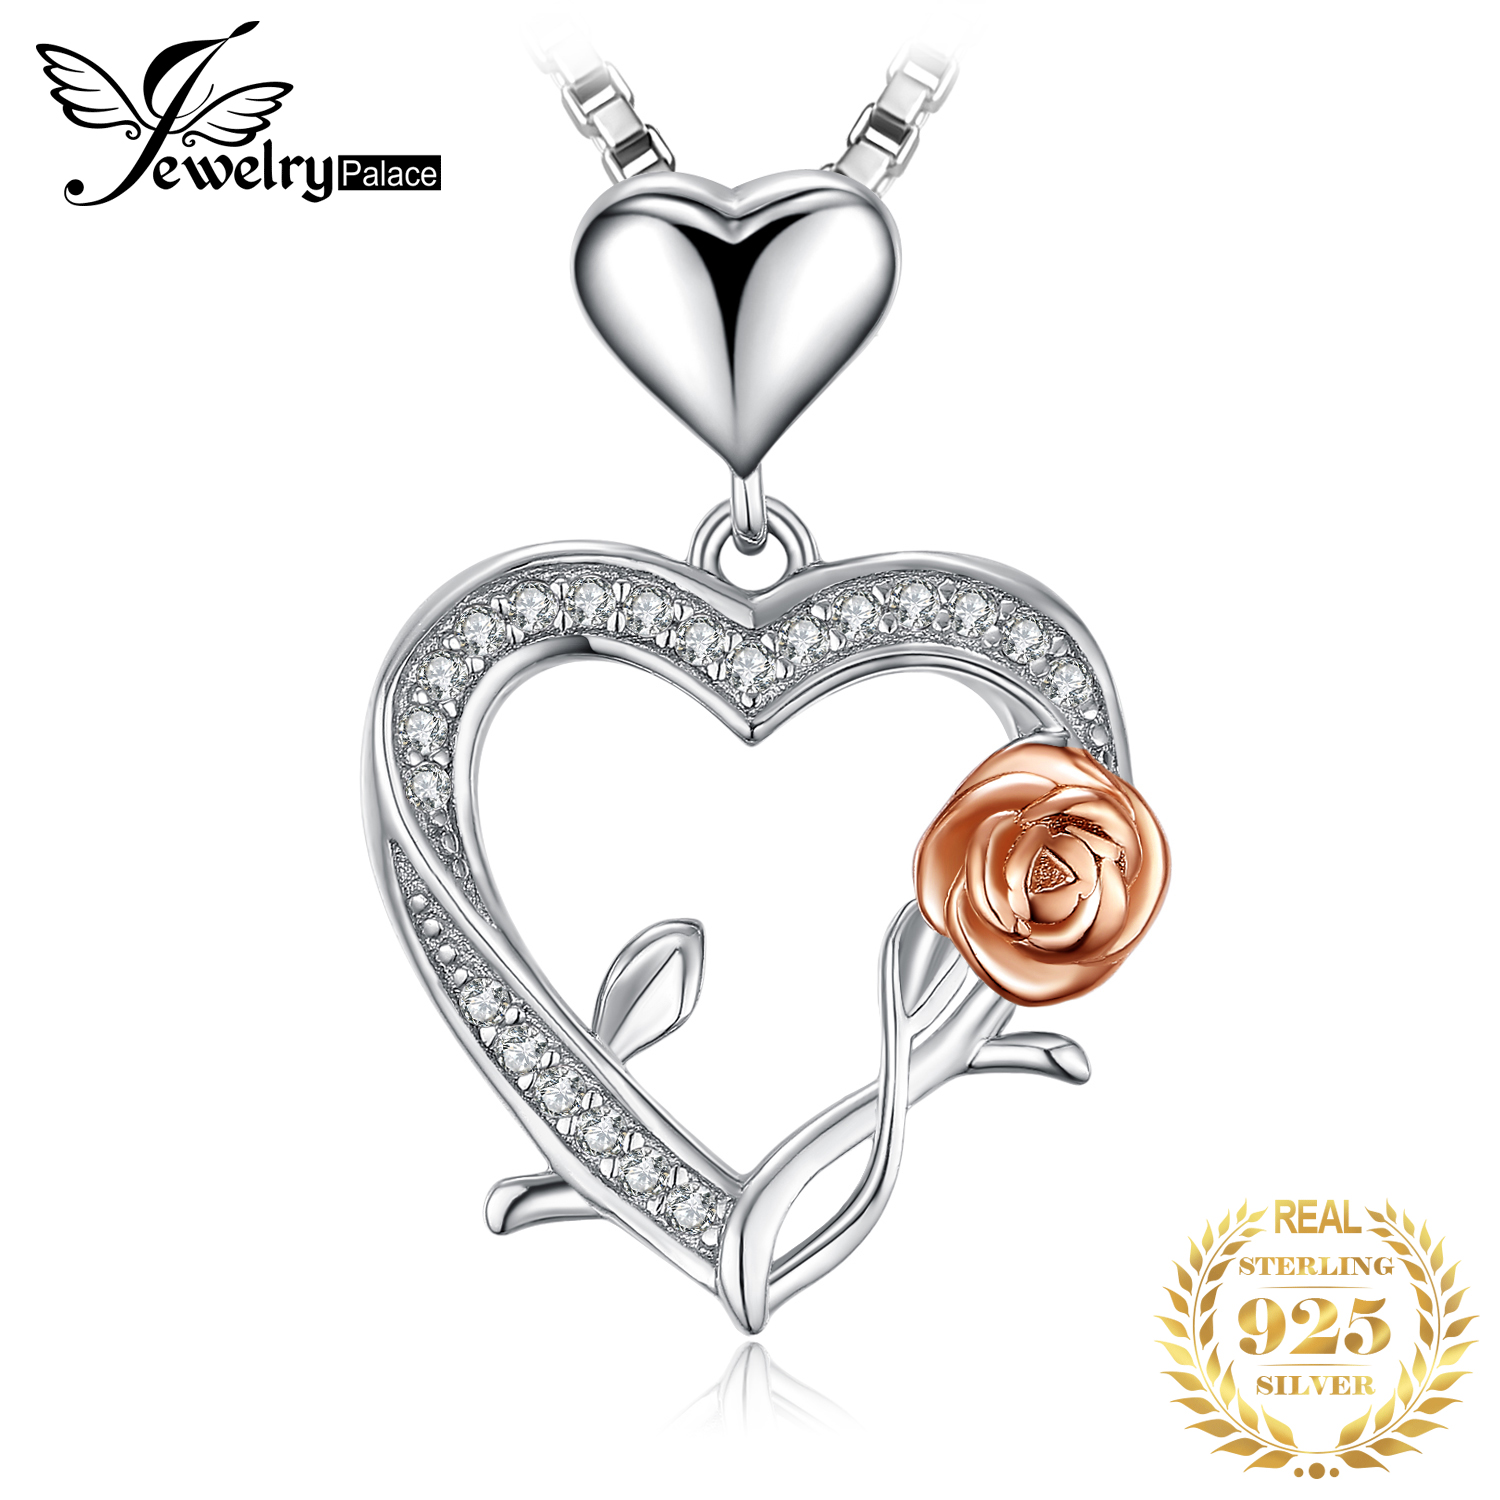 JPalace Heart Rose Silver Pendant Necklace 925 Sterling Silver  Choker Statement Necklace Women Silver 925 Jewelry Without ChainPendant  Necklaces